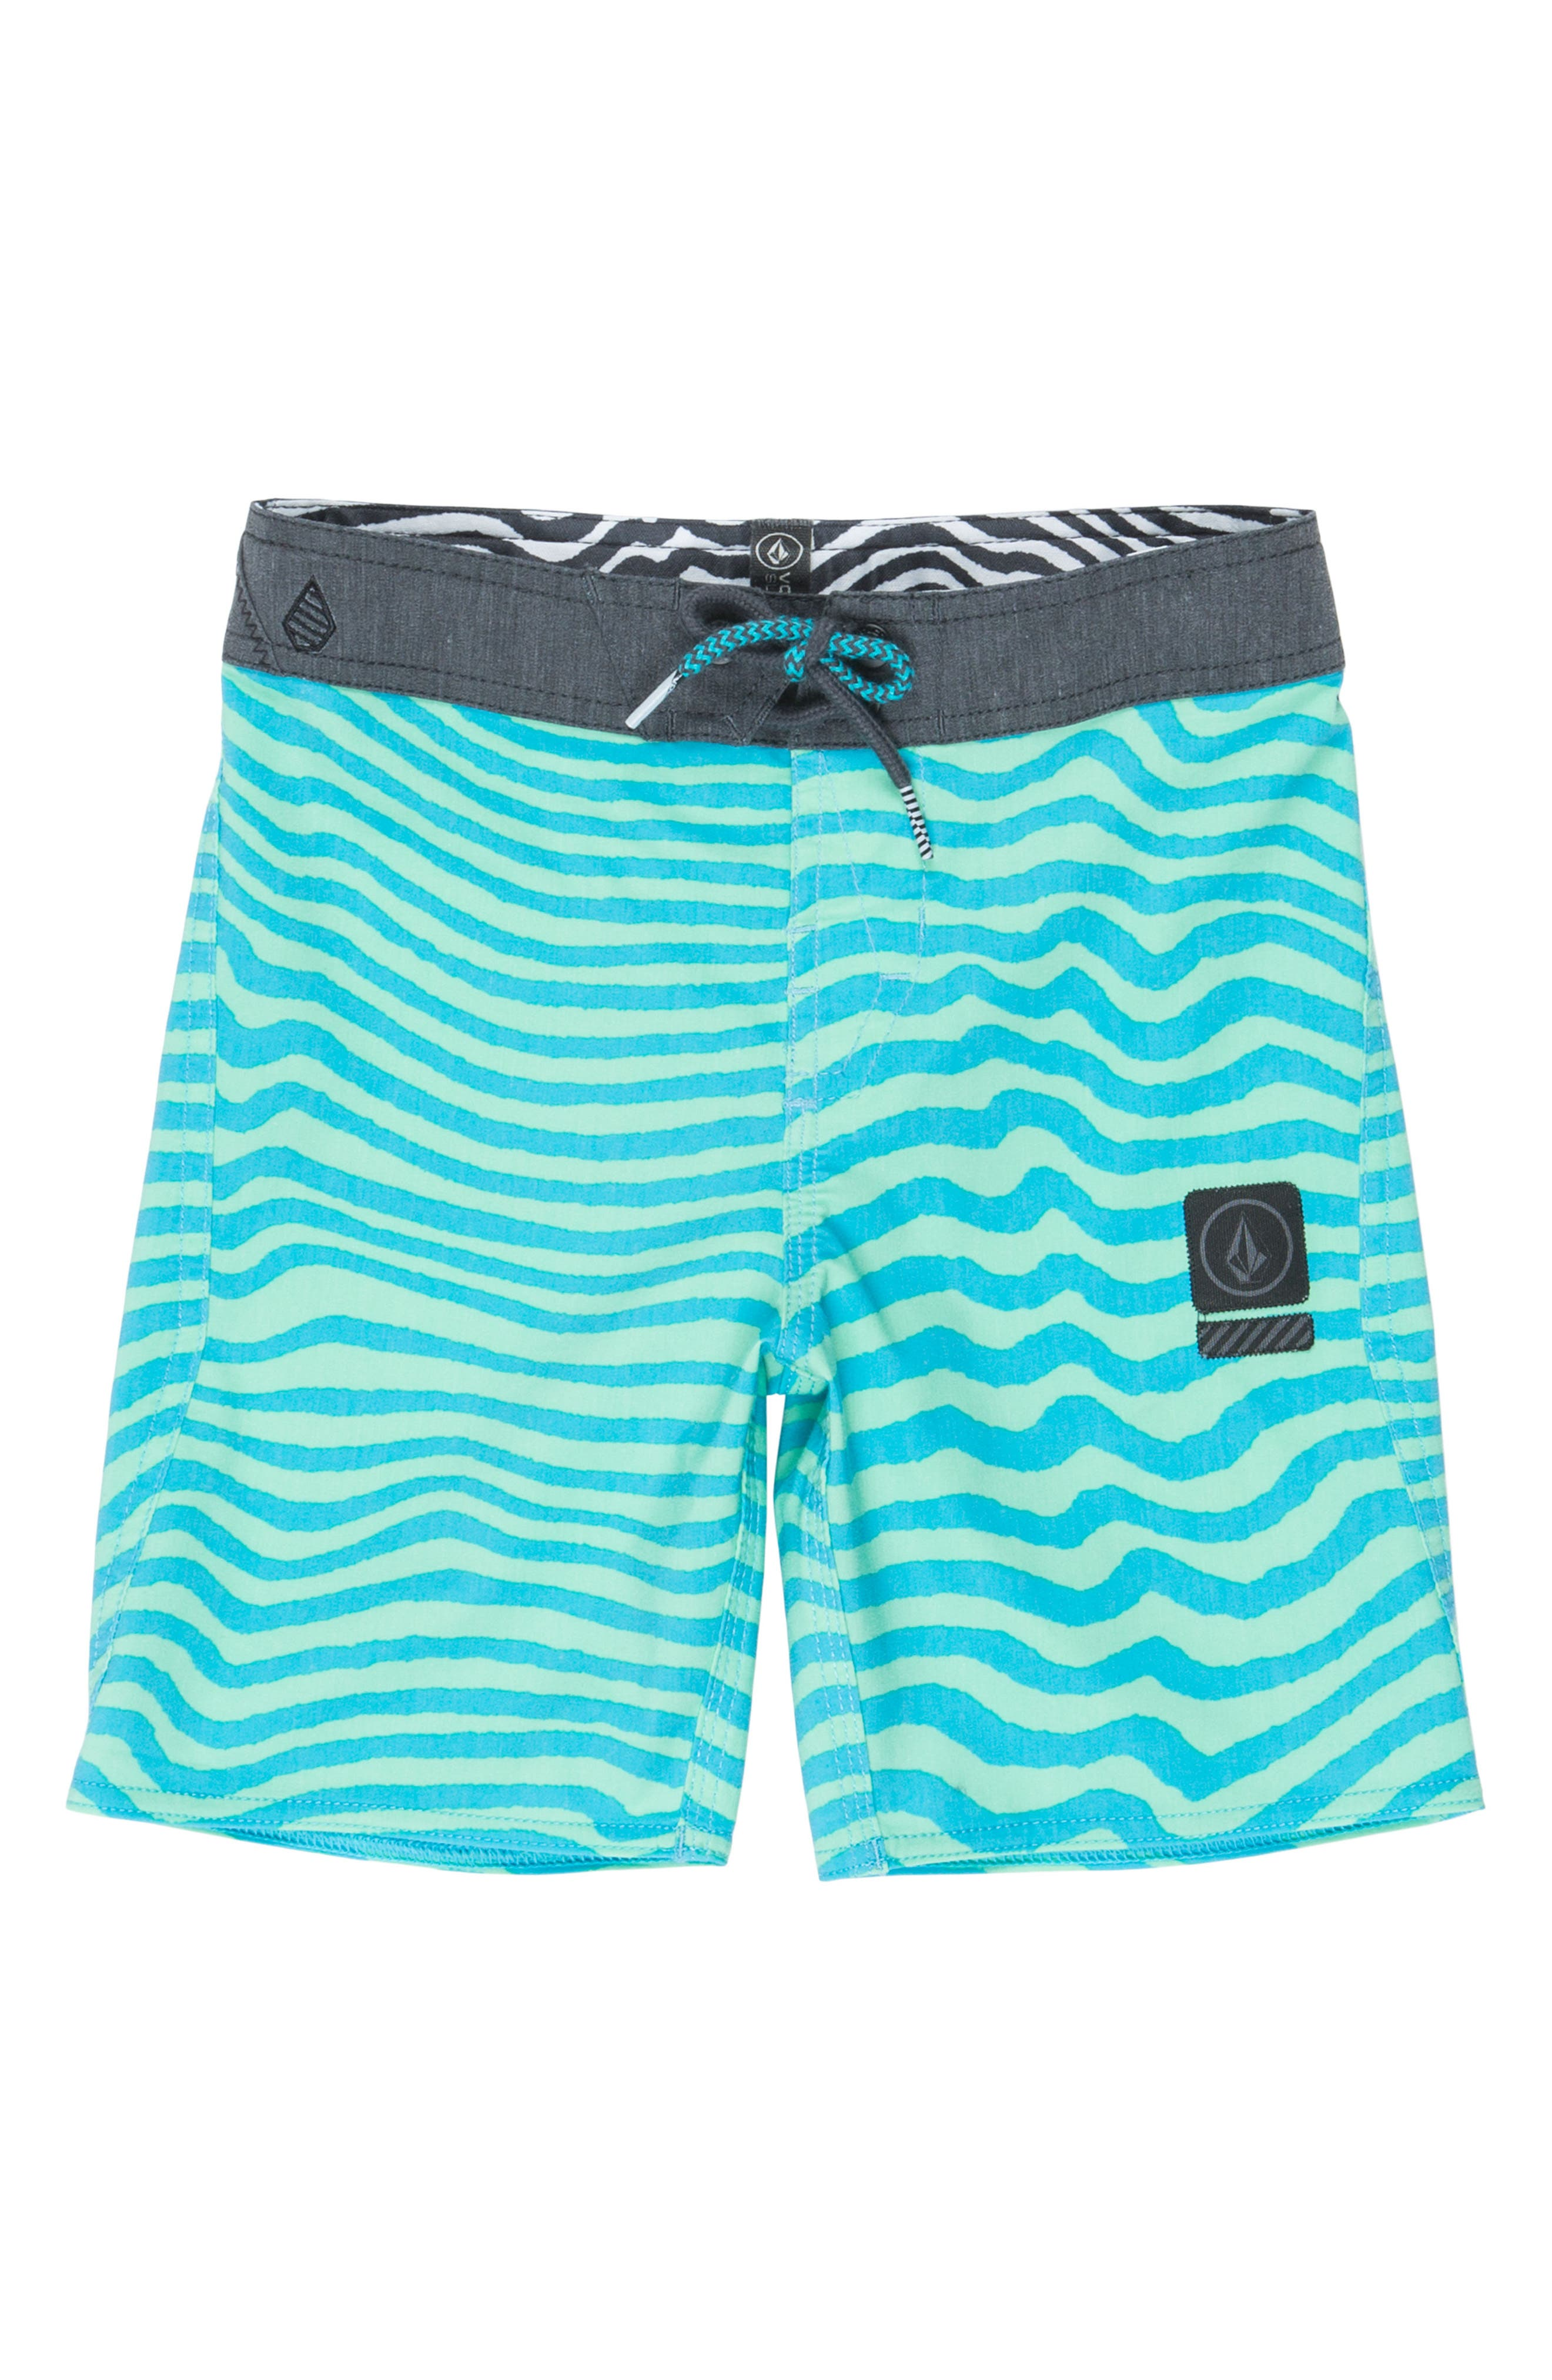 Volcom Mag Vibes Board Shorts (Toddler Boys & Little Boys)